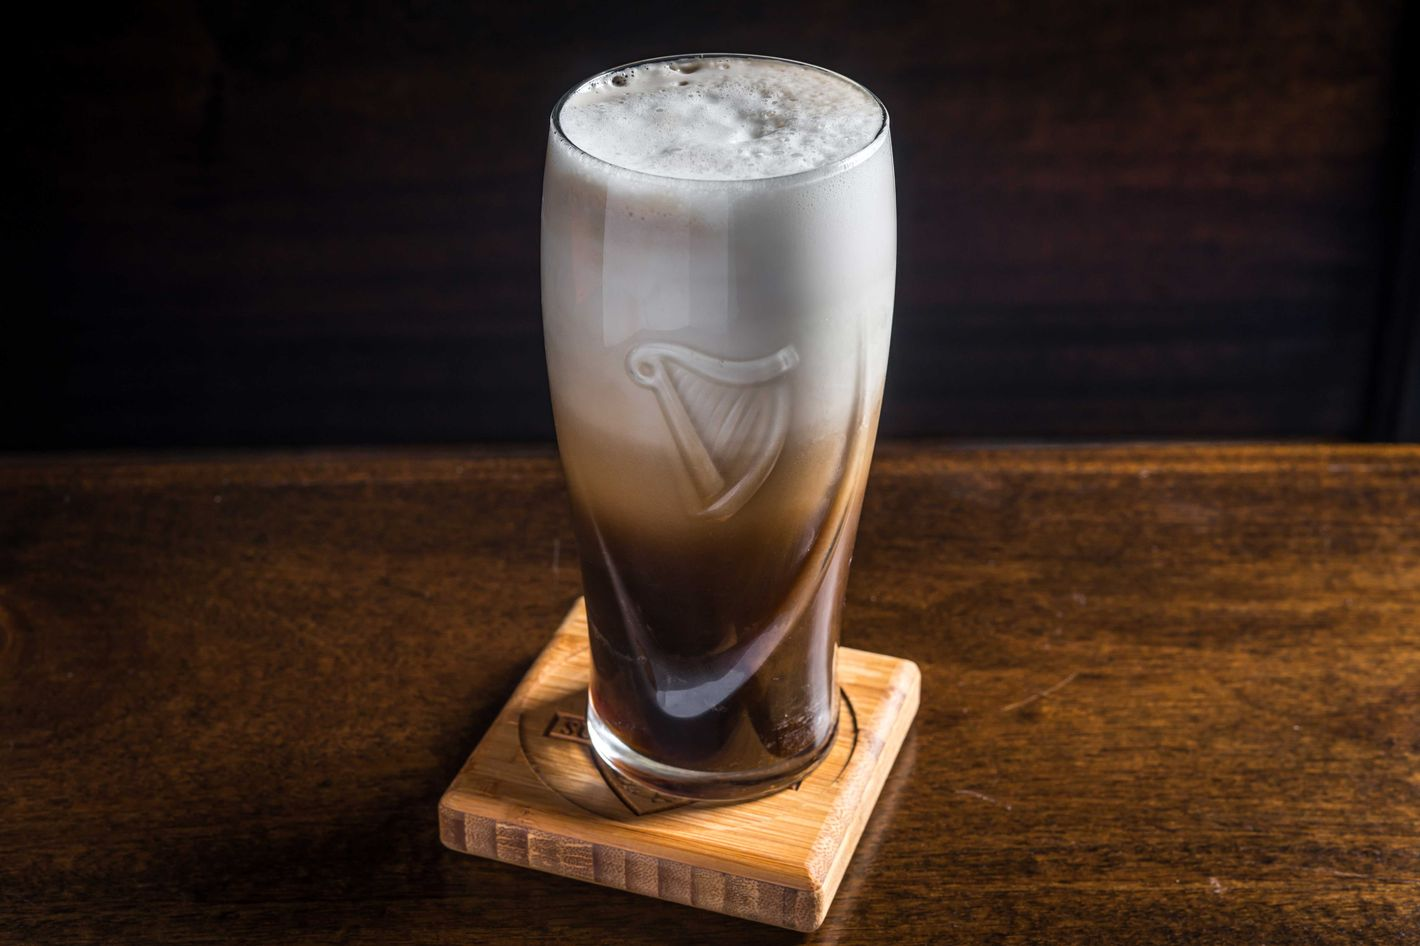 The Tough Room is a Guinness-and-whiskey sour.